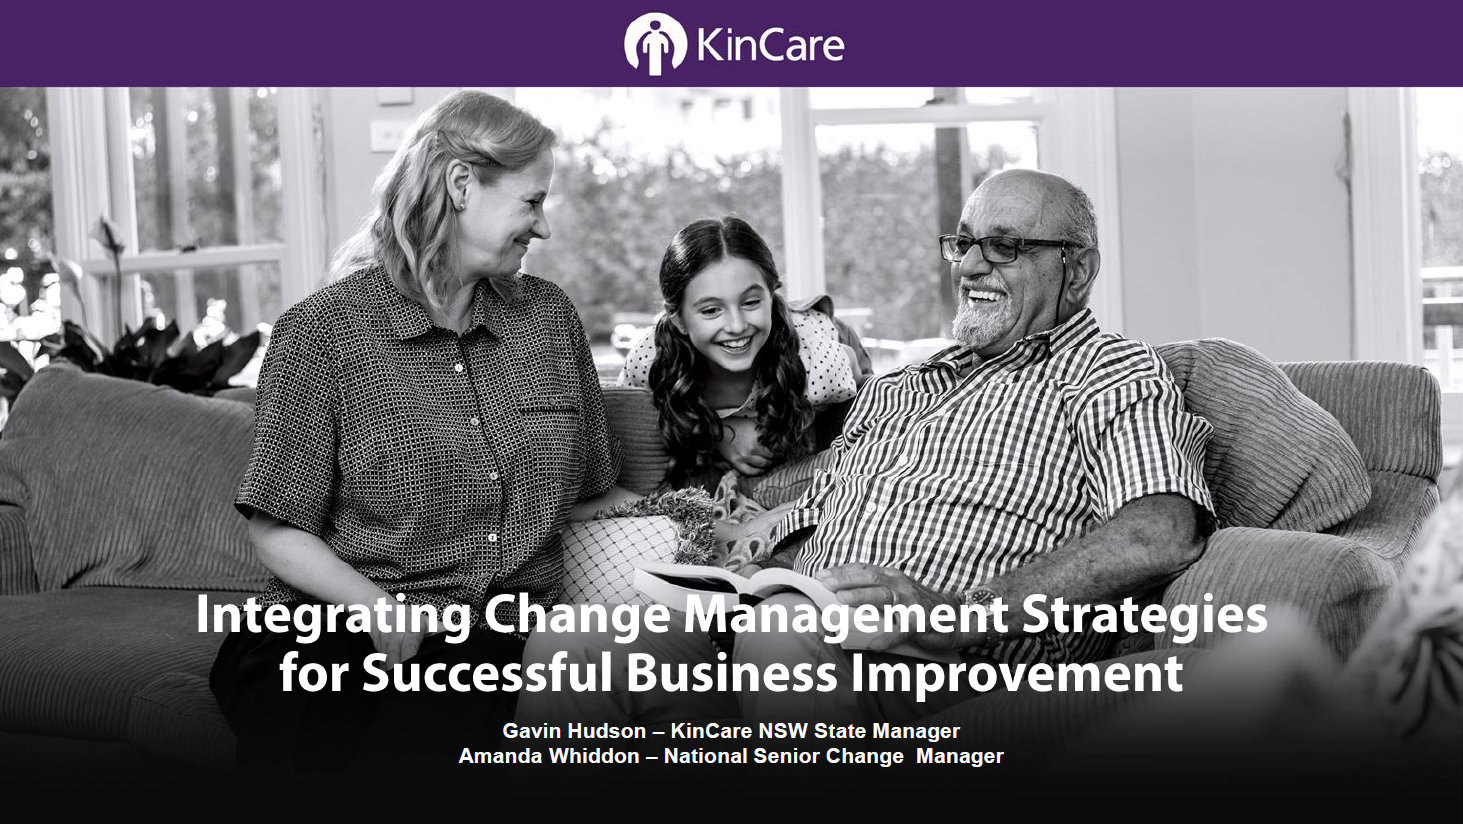 Integrating Change Management Strategies for Successful Business Improvement